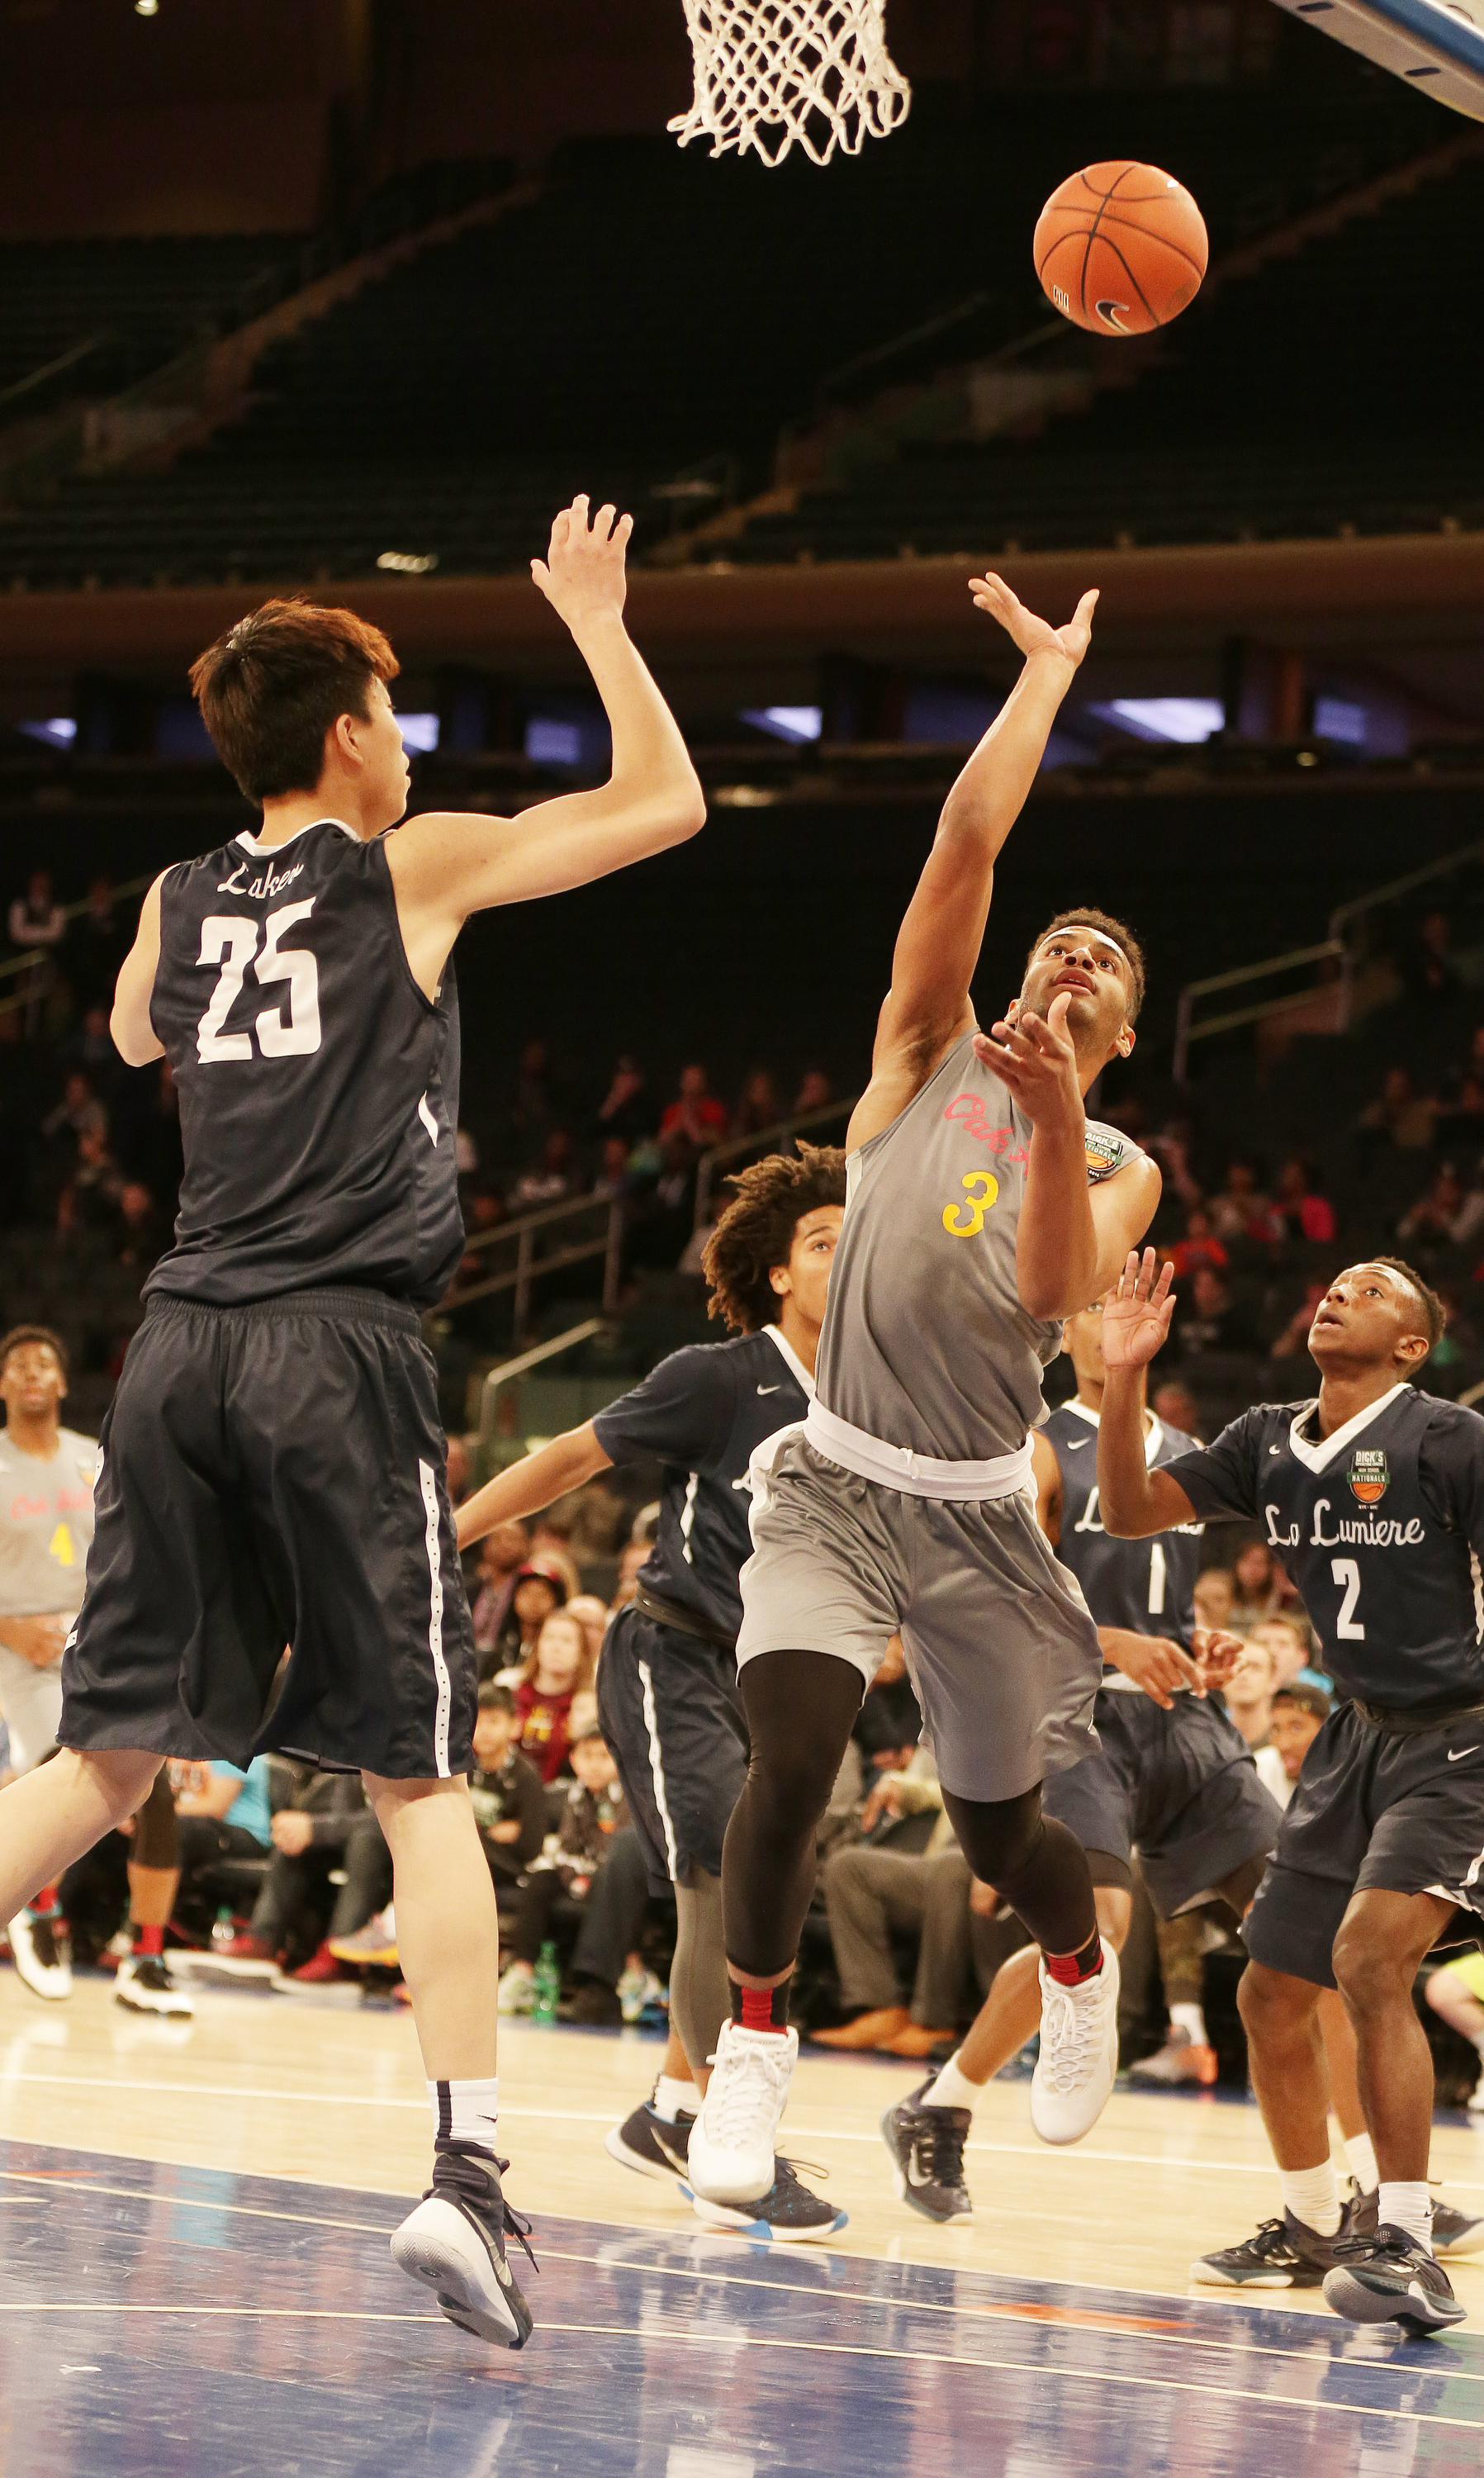 4/2/2016 12:00PM -- Middle Village, NY, U.S.A -- Oak Hill Academy forward Braxton Key (3) goes up for a shot against La Lumiere forward Kevin Zhang (25) during the first half during Dick's Sporting Goods High School Basketball Nationals at Madison Square Garden -- Photo by Andy Marlin USA TODAY Sports Images, Gannett ORG XMIT: US 134676 Dick's basketbal 4/1/2016 [Via MerlinFTP Drop]